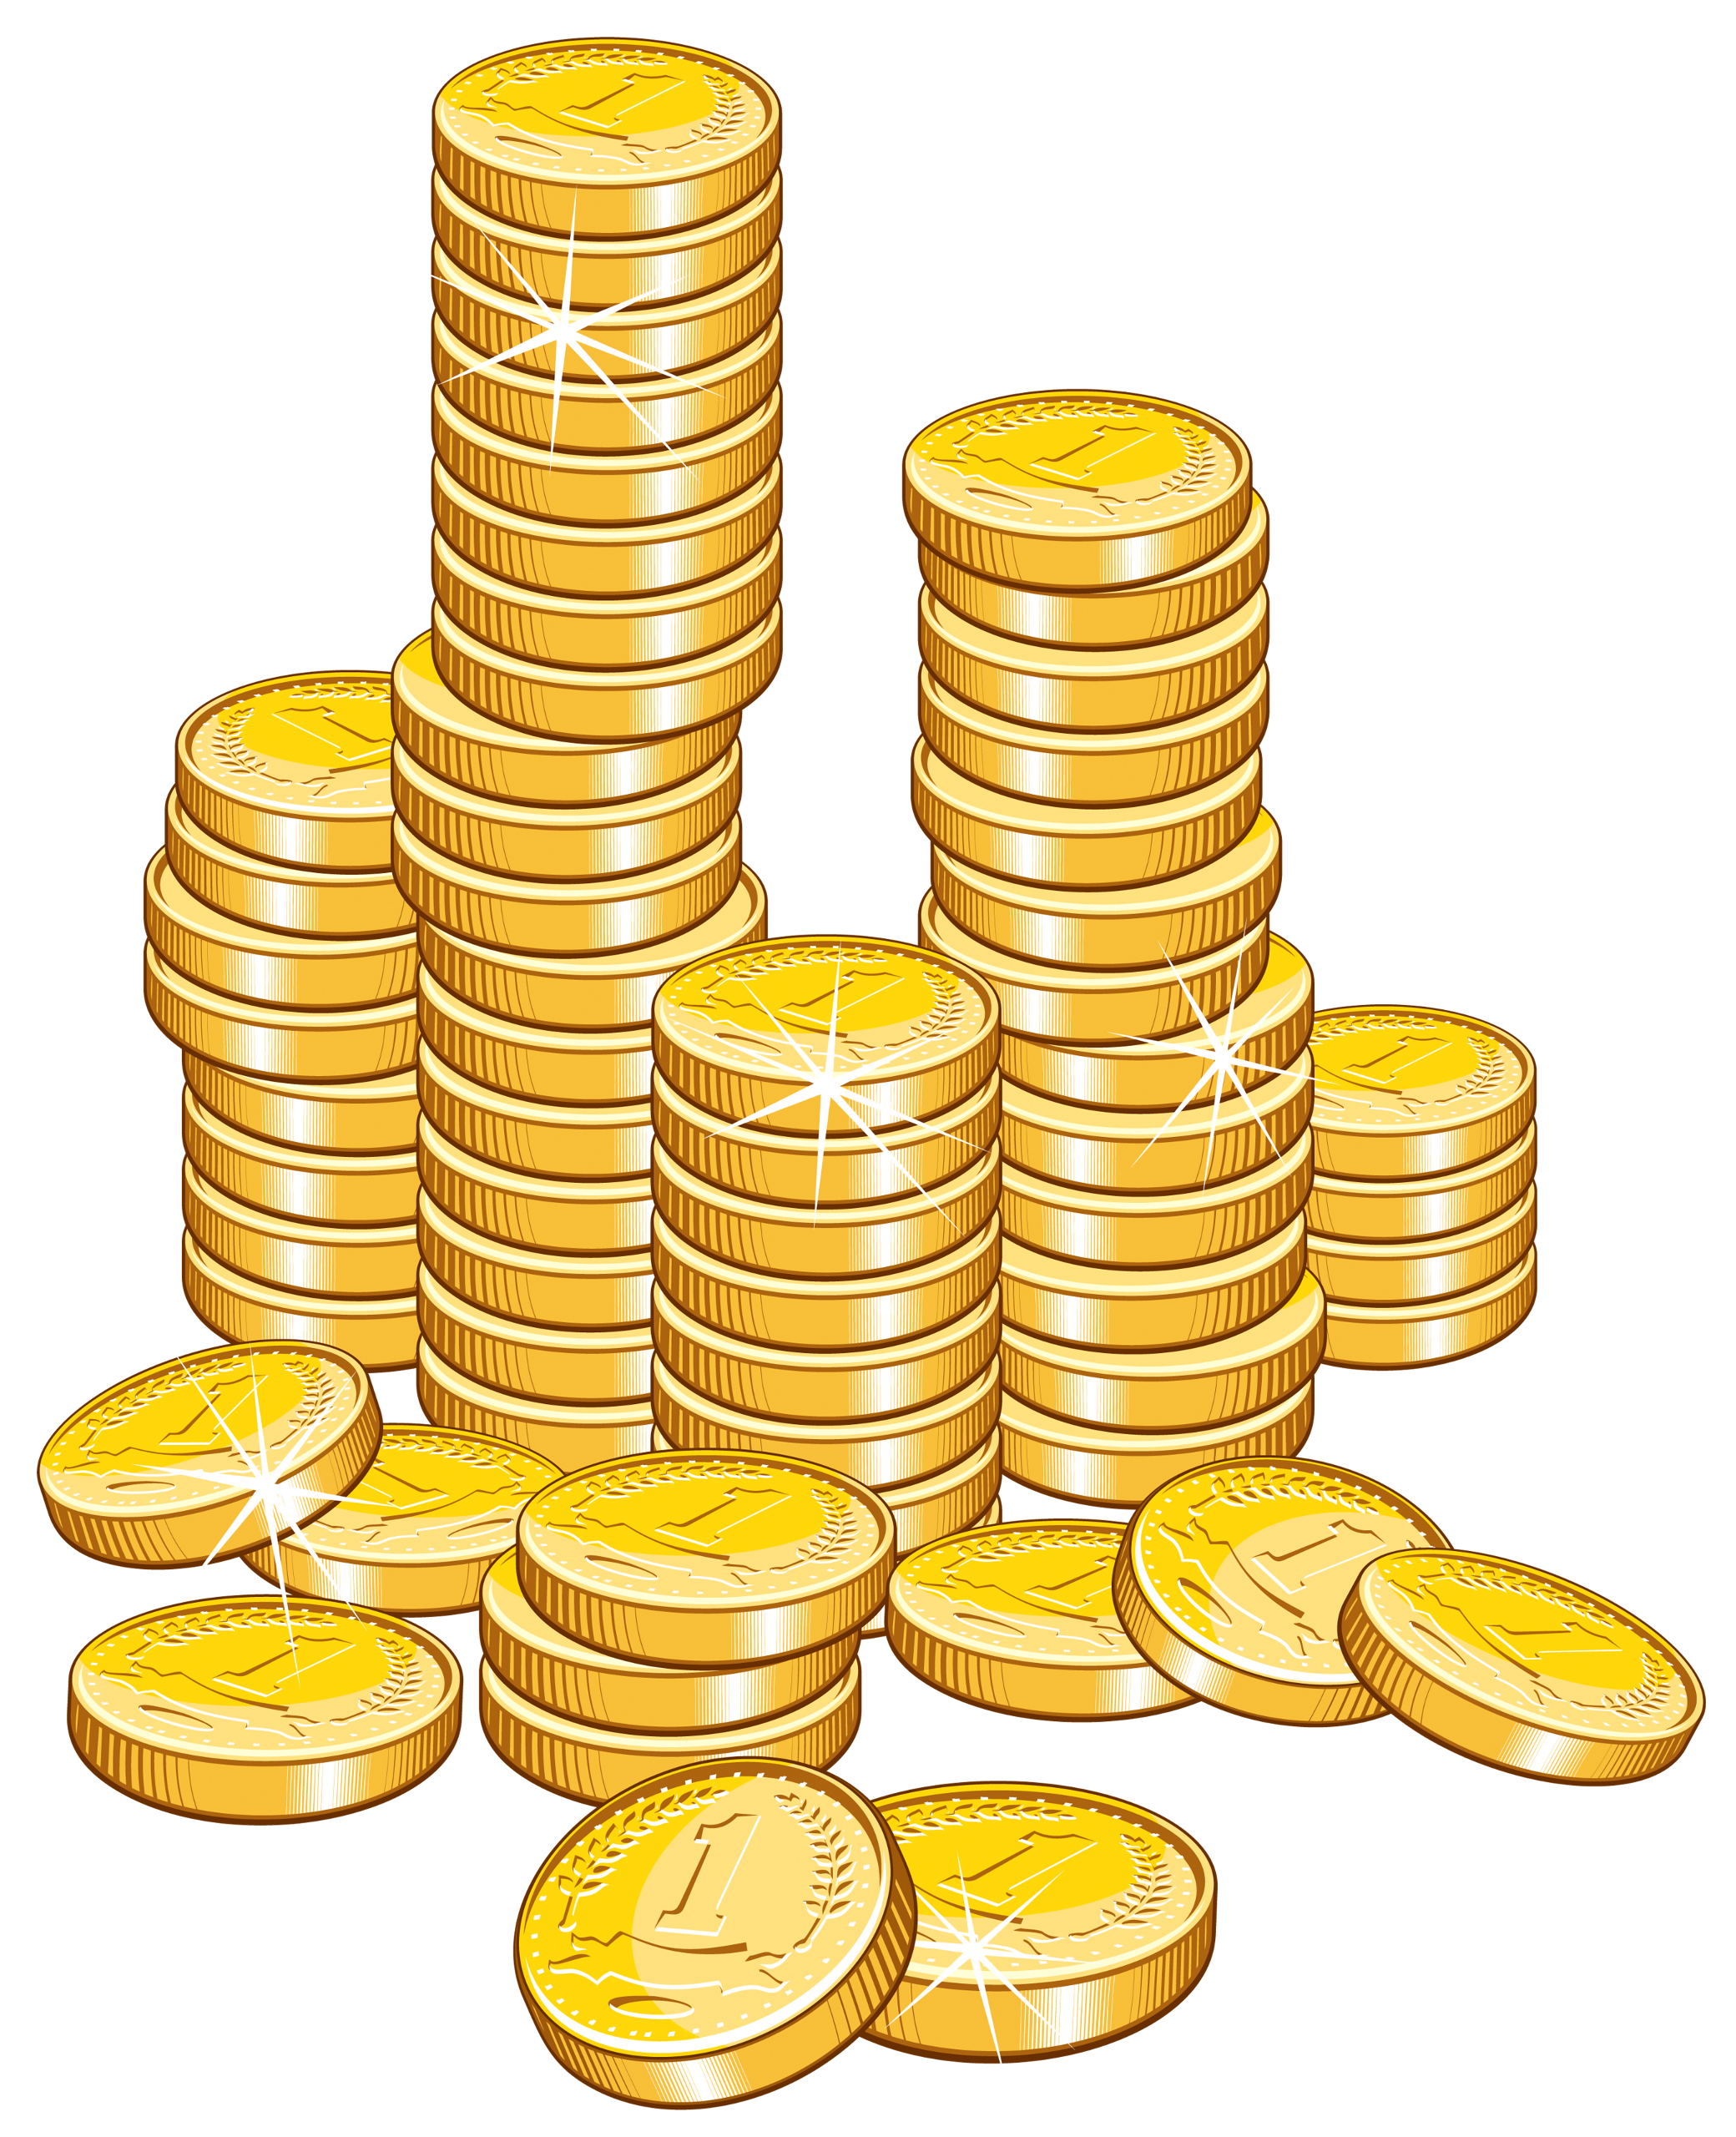 Coin clipart sack money. Jokingart com